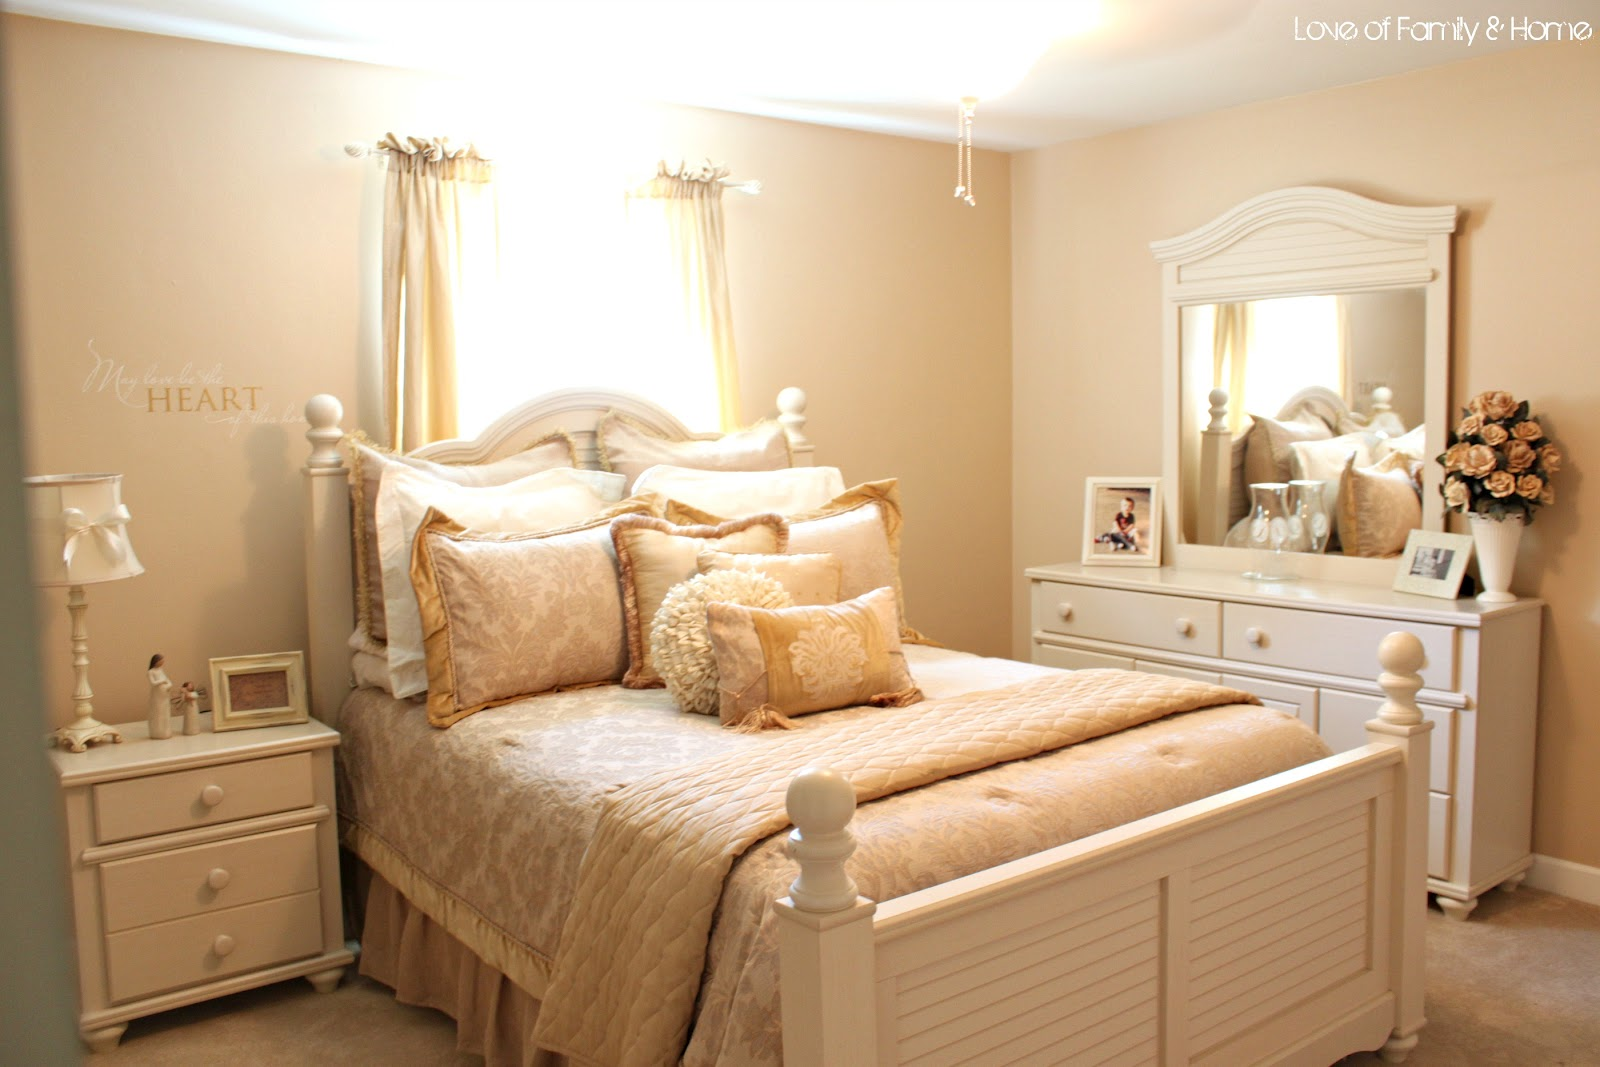 cottage style bedrooms. 10 Cottage Style Bedrooms Makeover Inspiration  Love of Family